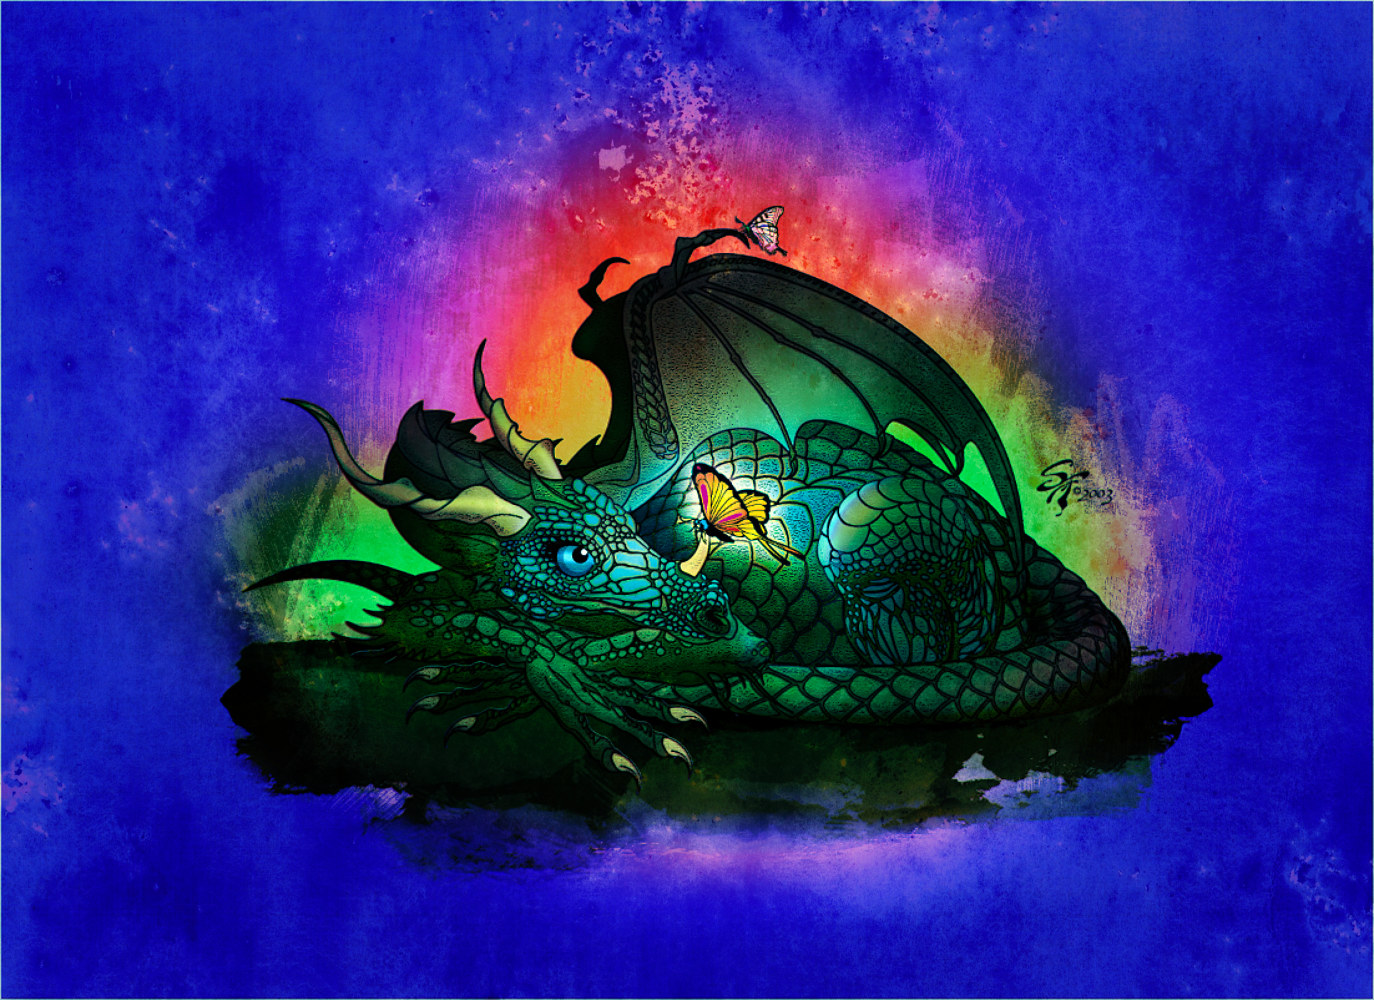 Children's Dragon by Steve Ferris